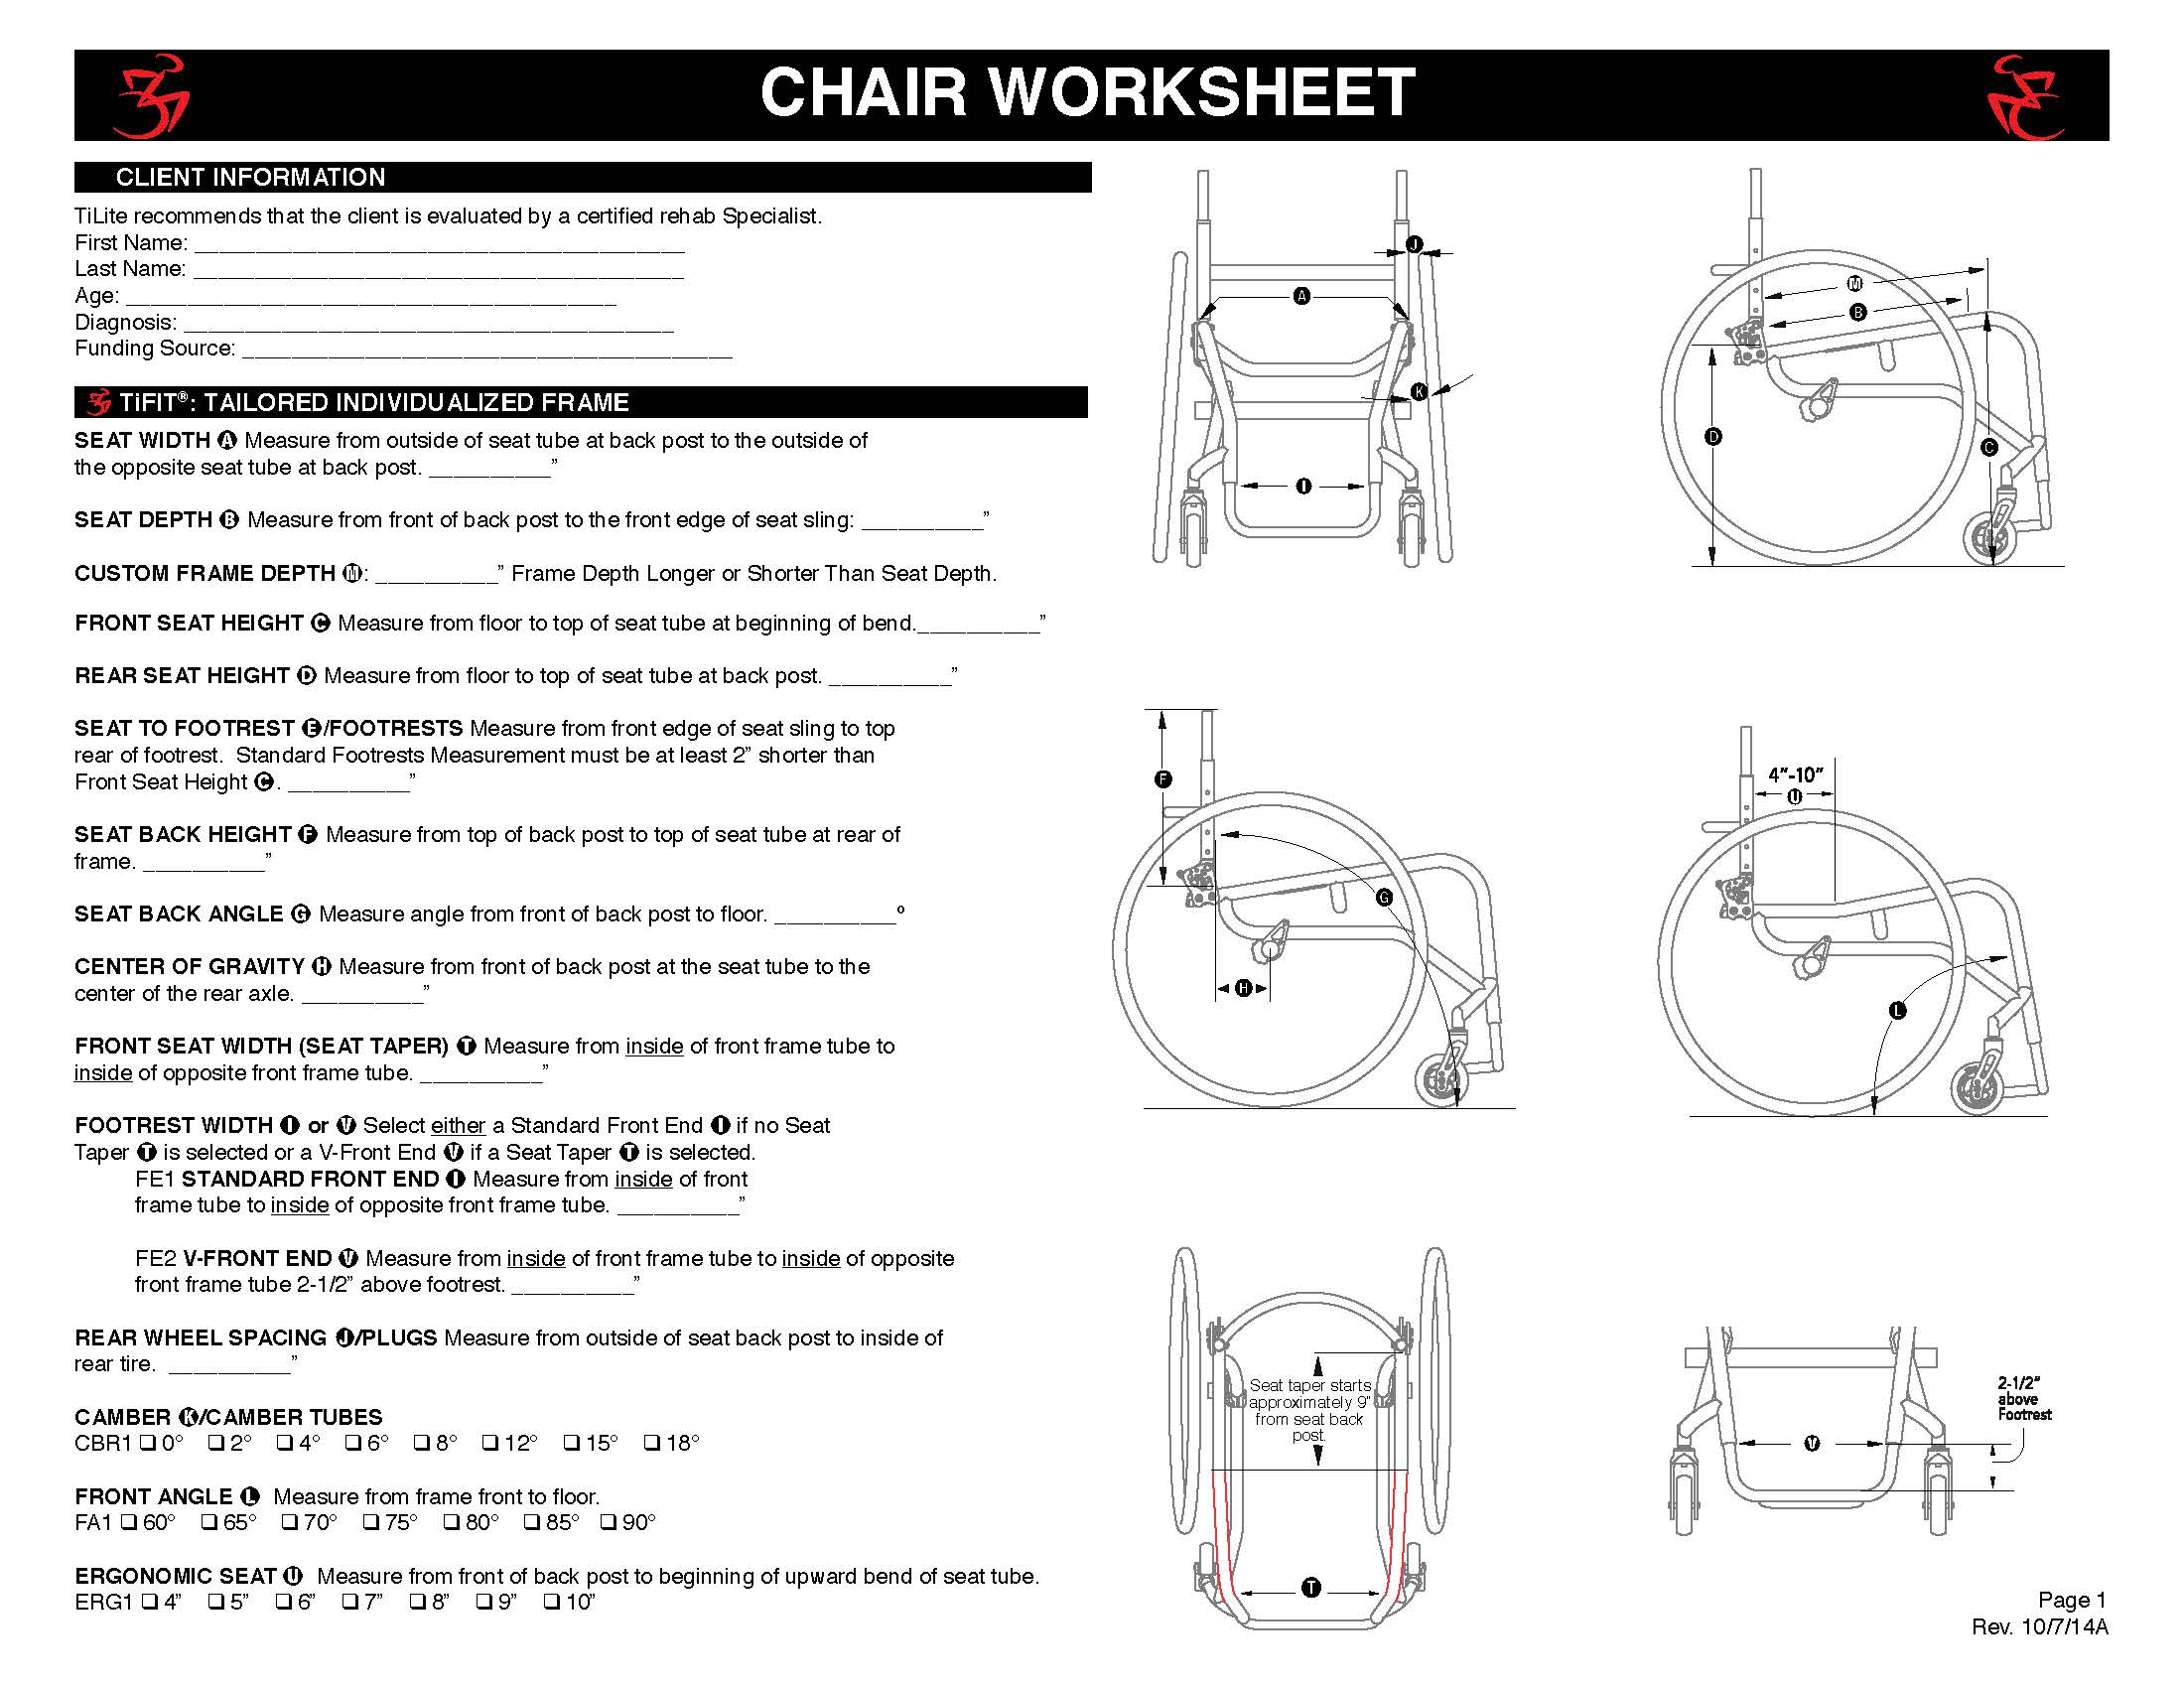 TiFit Chair Worksheet_Page_1